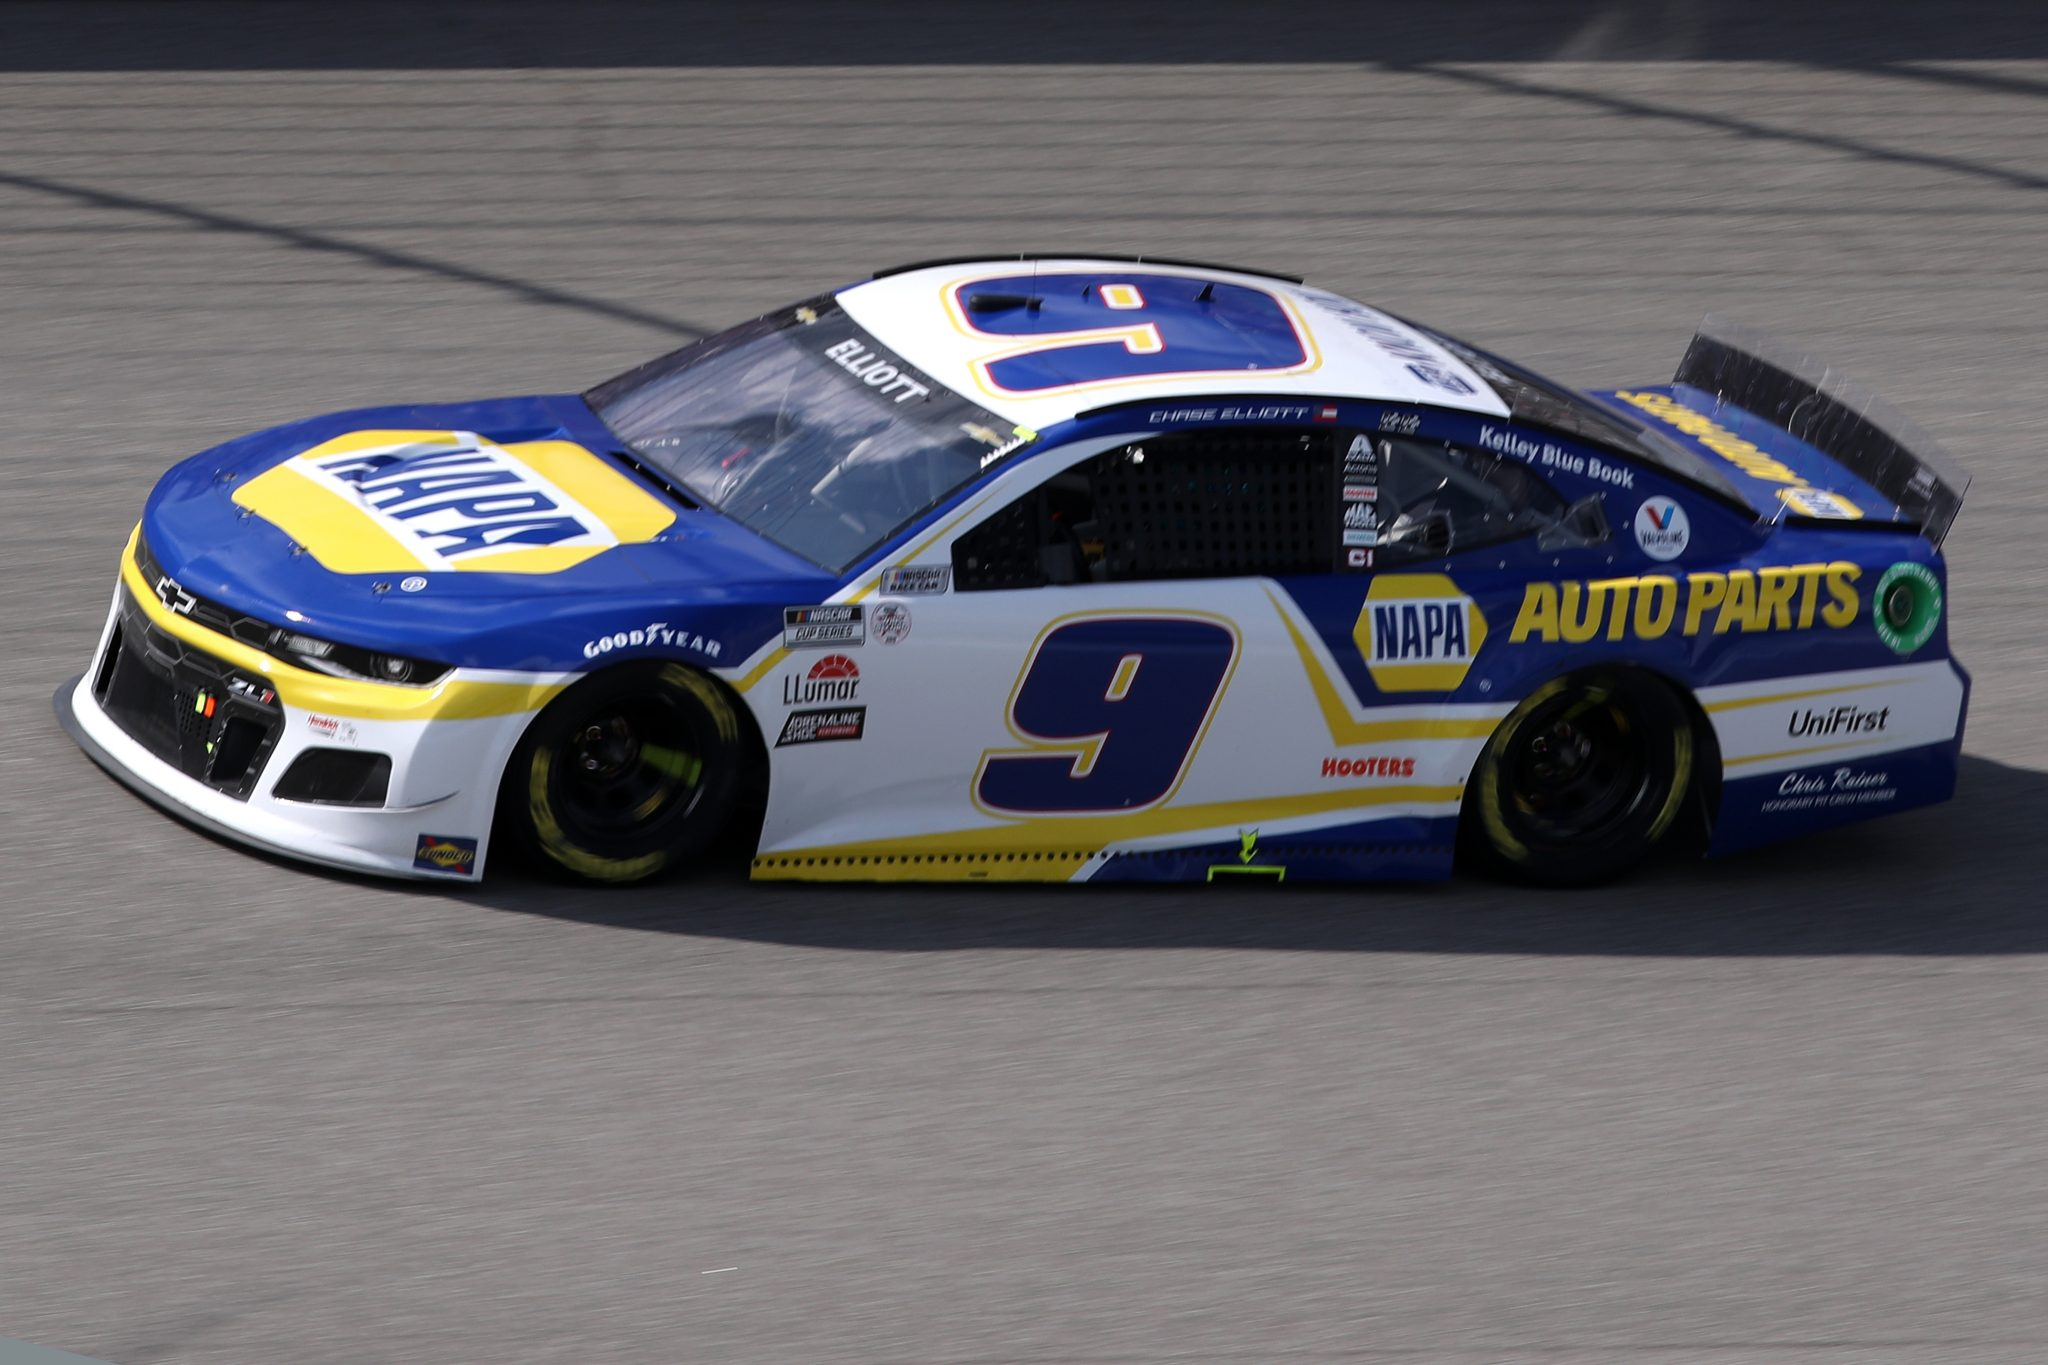 BROOKLYN, MICHIGAN - AUGUST 22: Chase Elliott, driver of the #9 NAPA Auto Parts Chevrolet, drives during the NASCAR Cup Series FireKeepers Casino 400 at Michigan International Speedway on August 22, 2021 in Brooklyn, Michigan. (Photo by Sean Gardner/Getty Images)   Getty Images